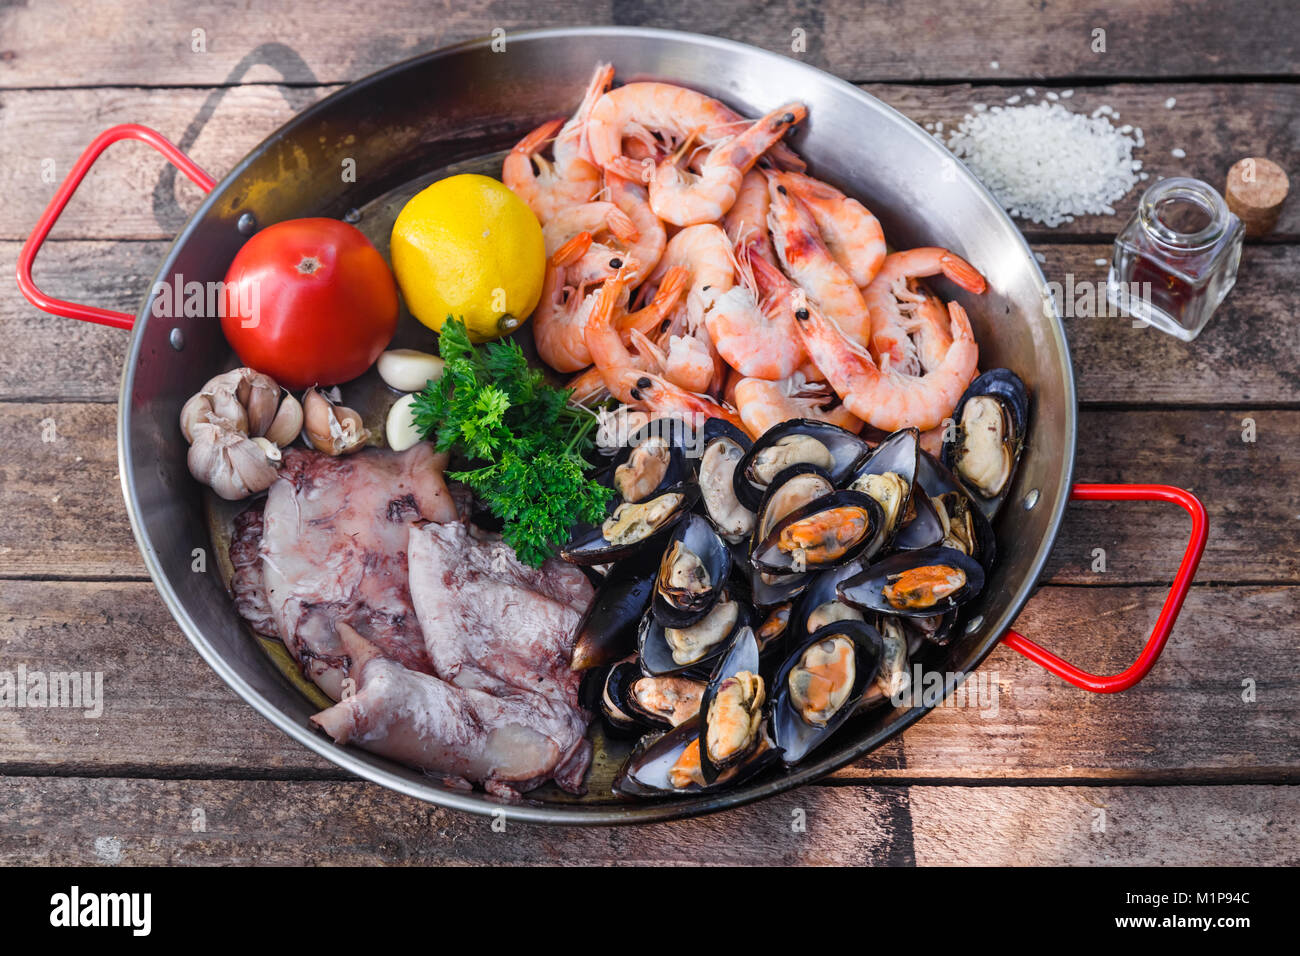 Raw seafood products in paella pan on a wooden table - Stock Image